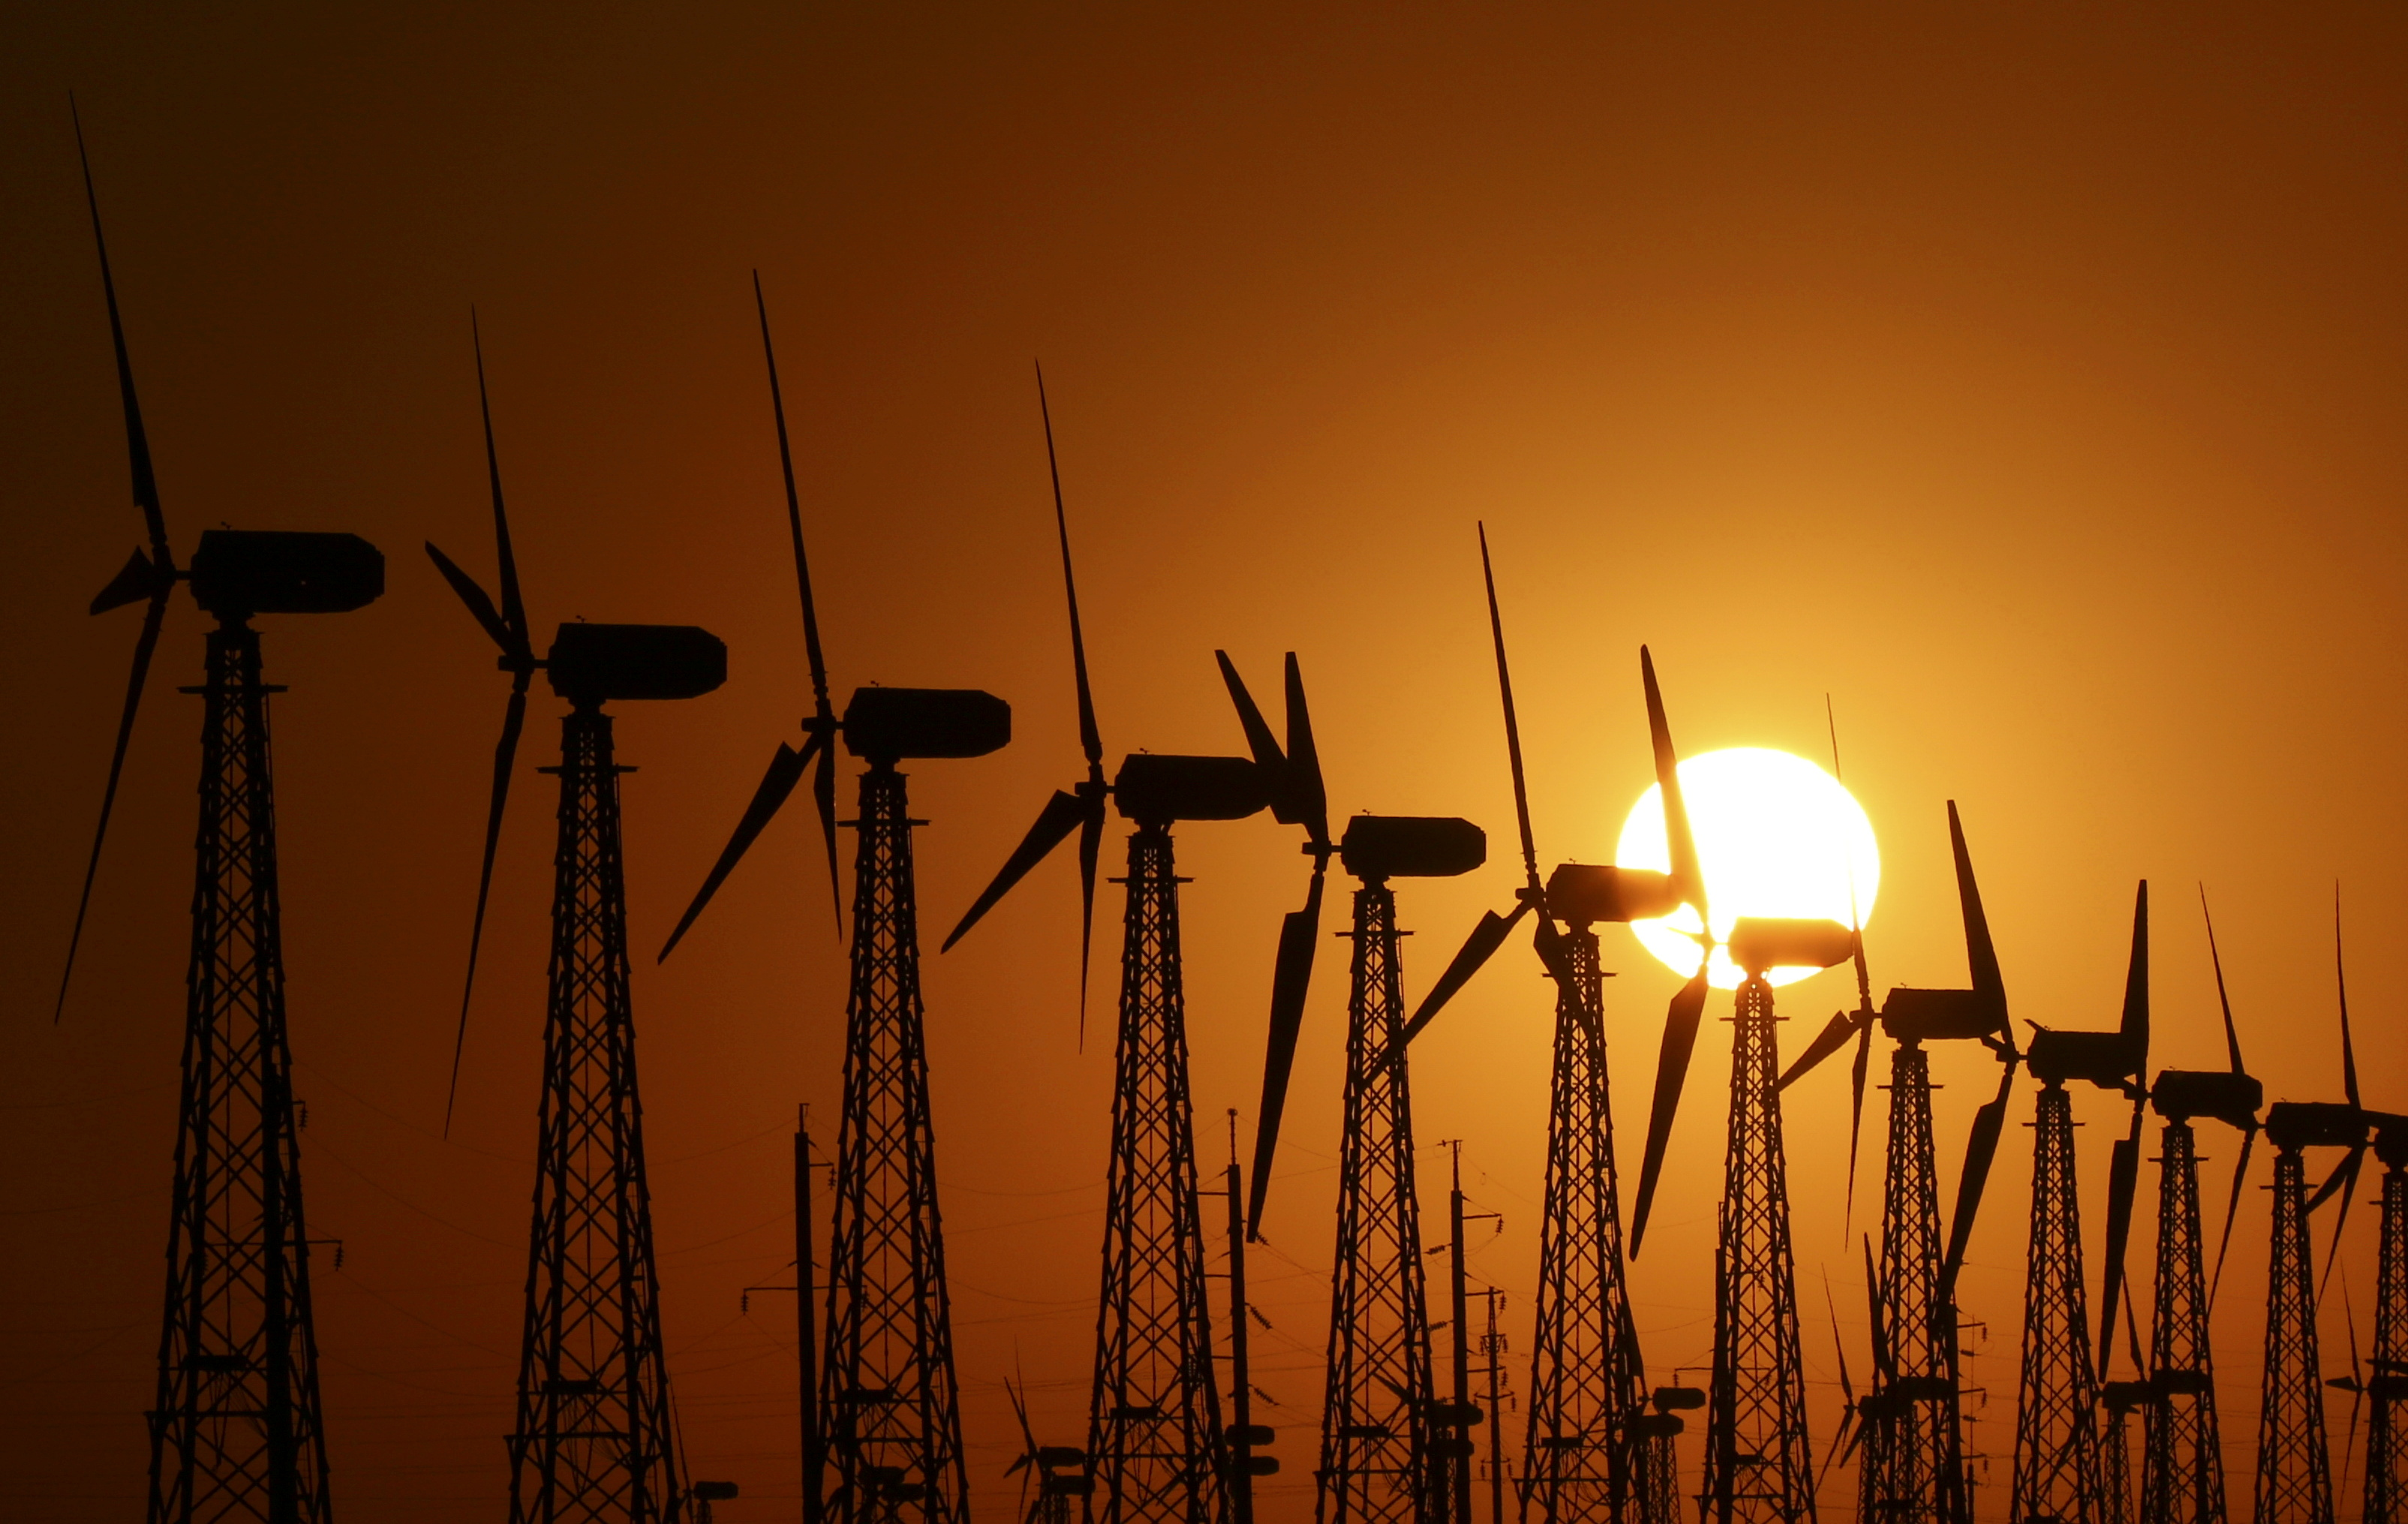 The sun sets behind power-generating turbines of a local wind farm in the settlement of Mirnyi, Crimea June 1, 2018. REUTERS/Pavel Rebrov